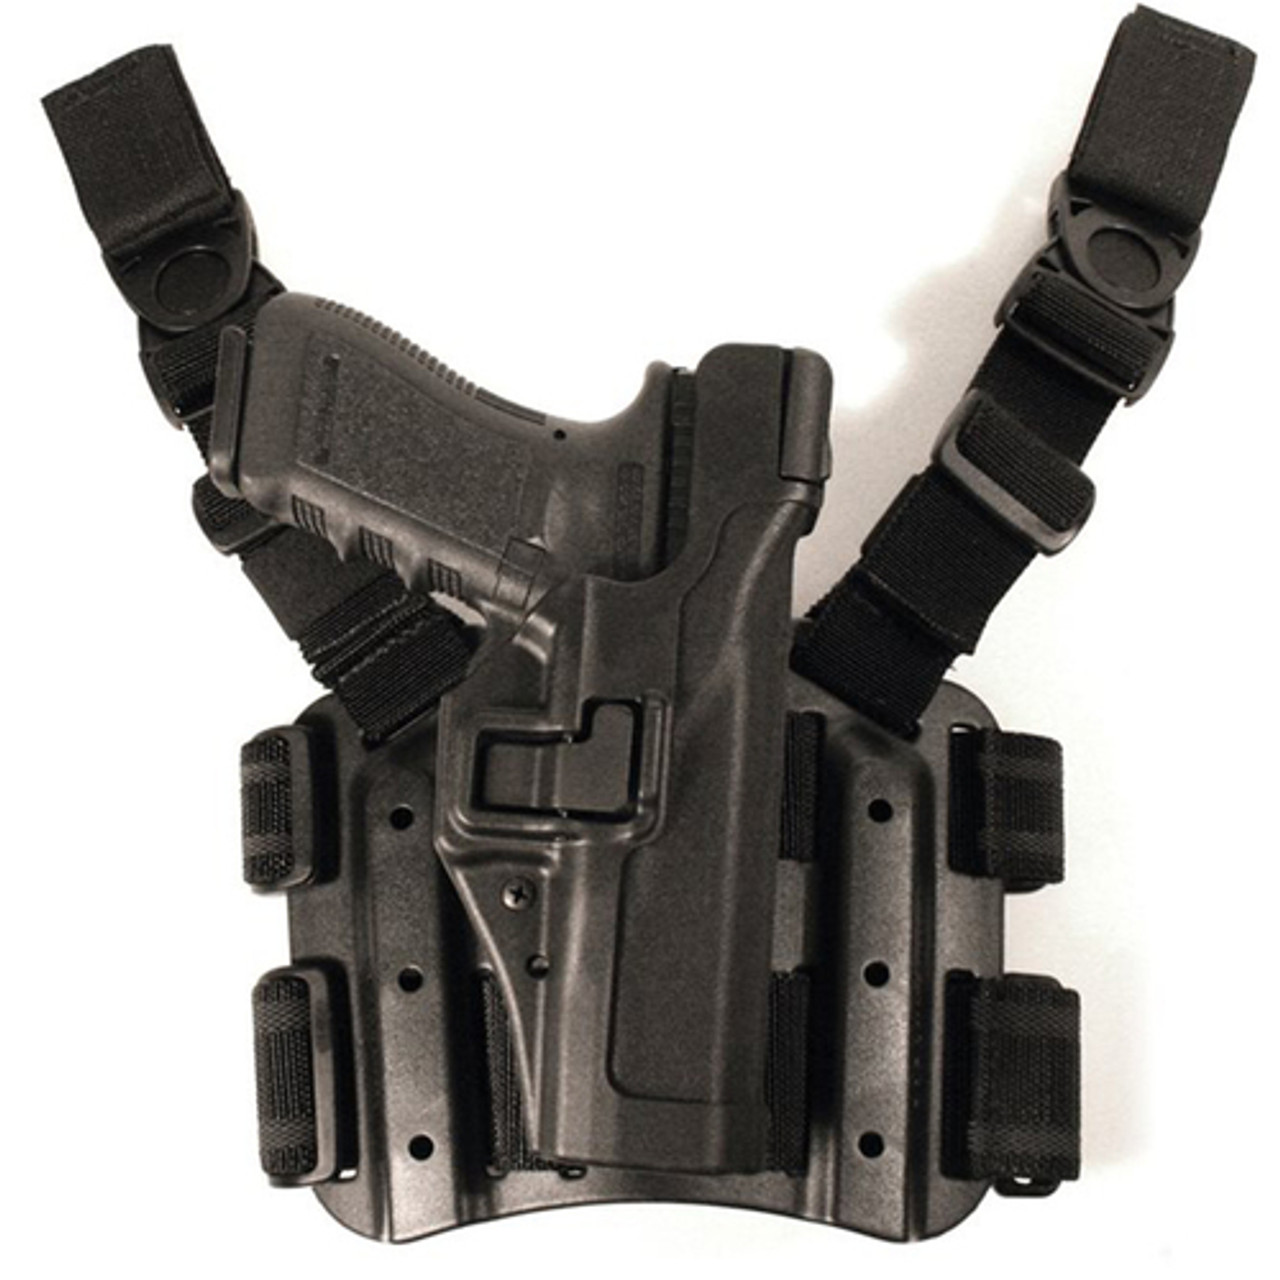 Blackhawk! 4306 SERPA® Level 3 Tactical Holster, available in Black and Foliage Green